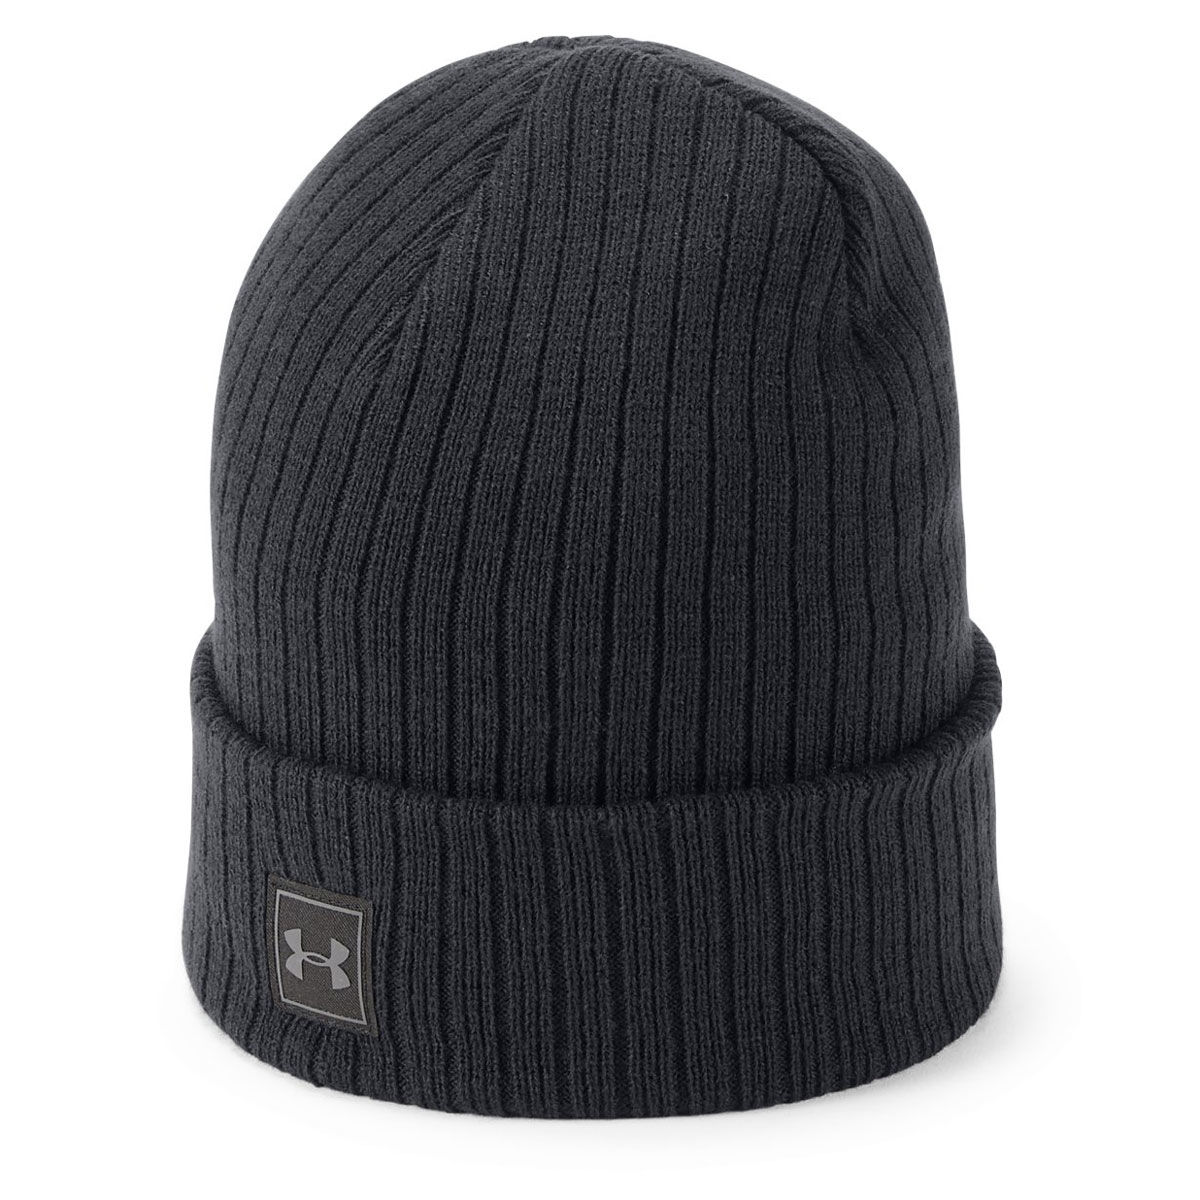 Under Armour Mens Truck Stop Beanie